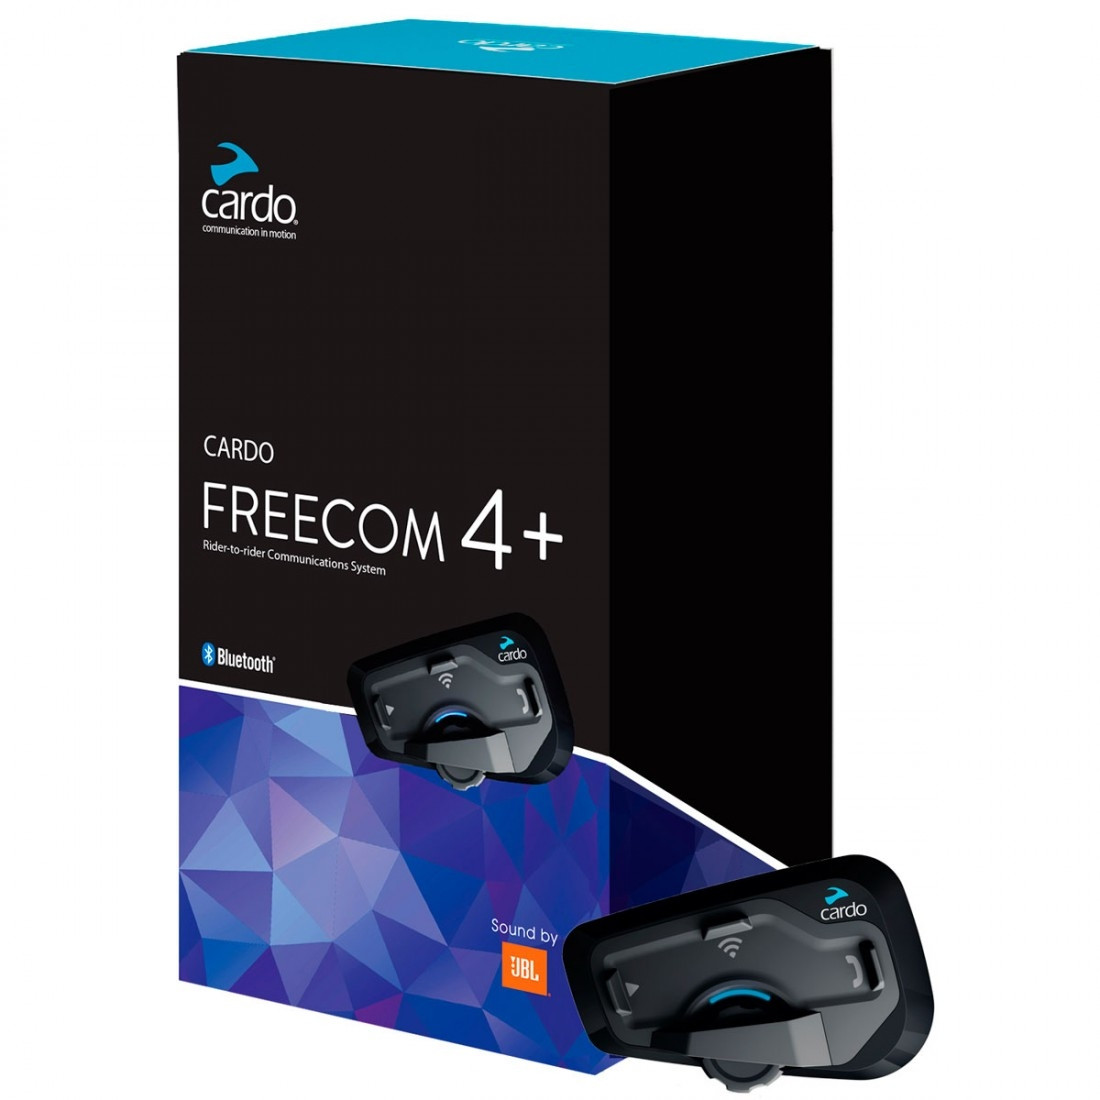 МОТОГАРНИТУРА Cardo Scala Rider Freecom 4+ JBL, Single